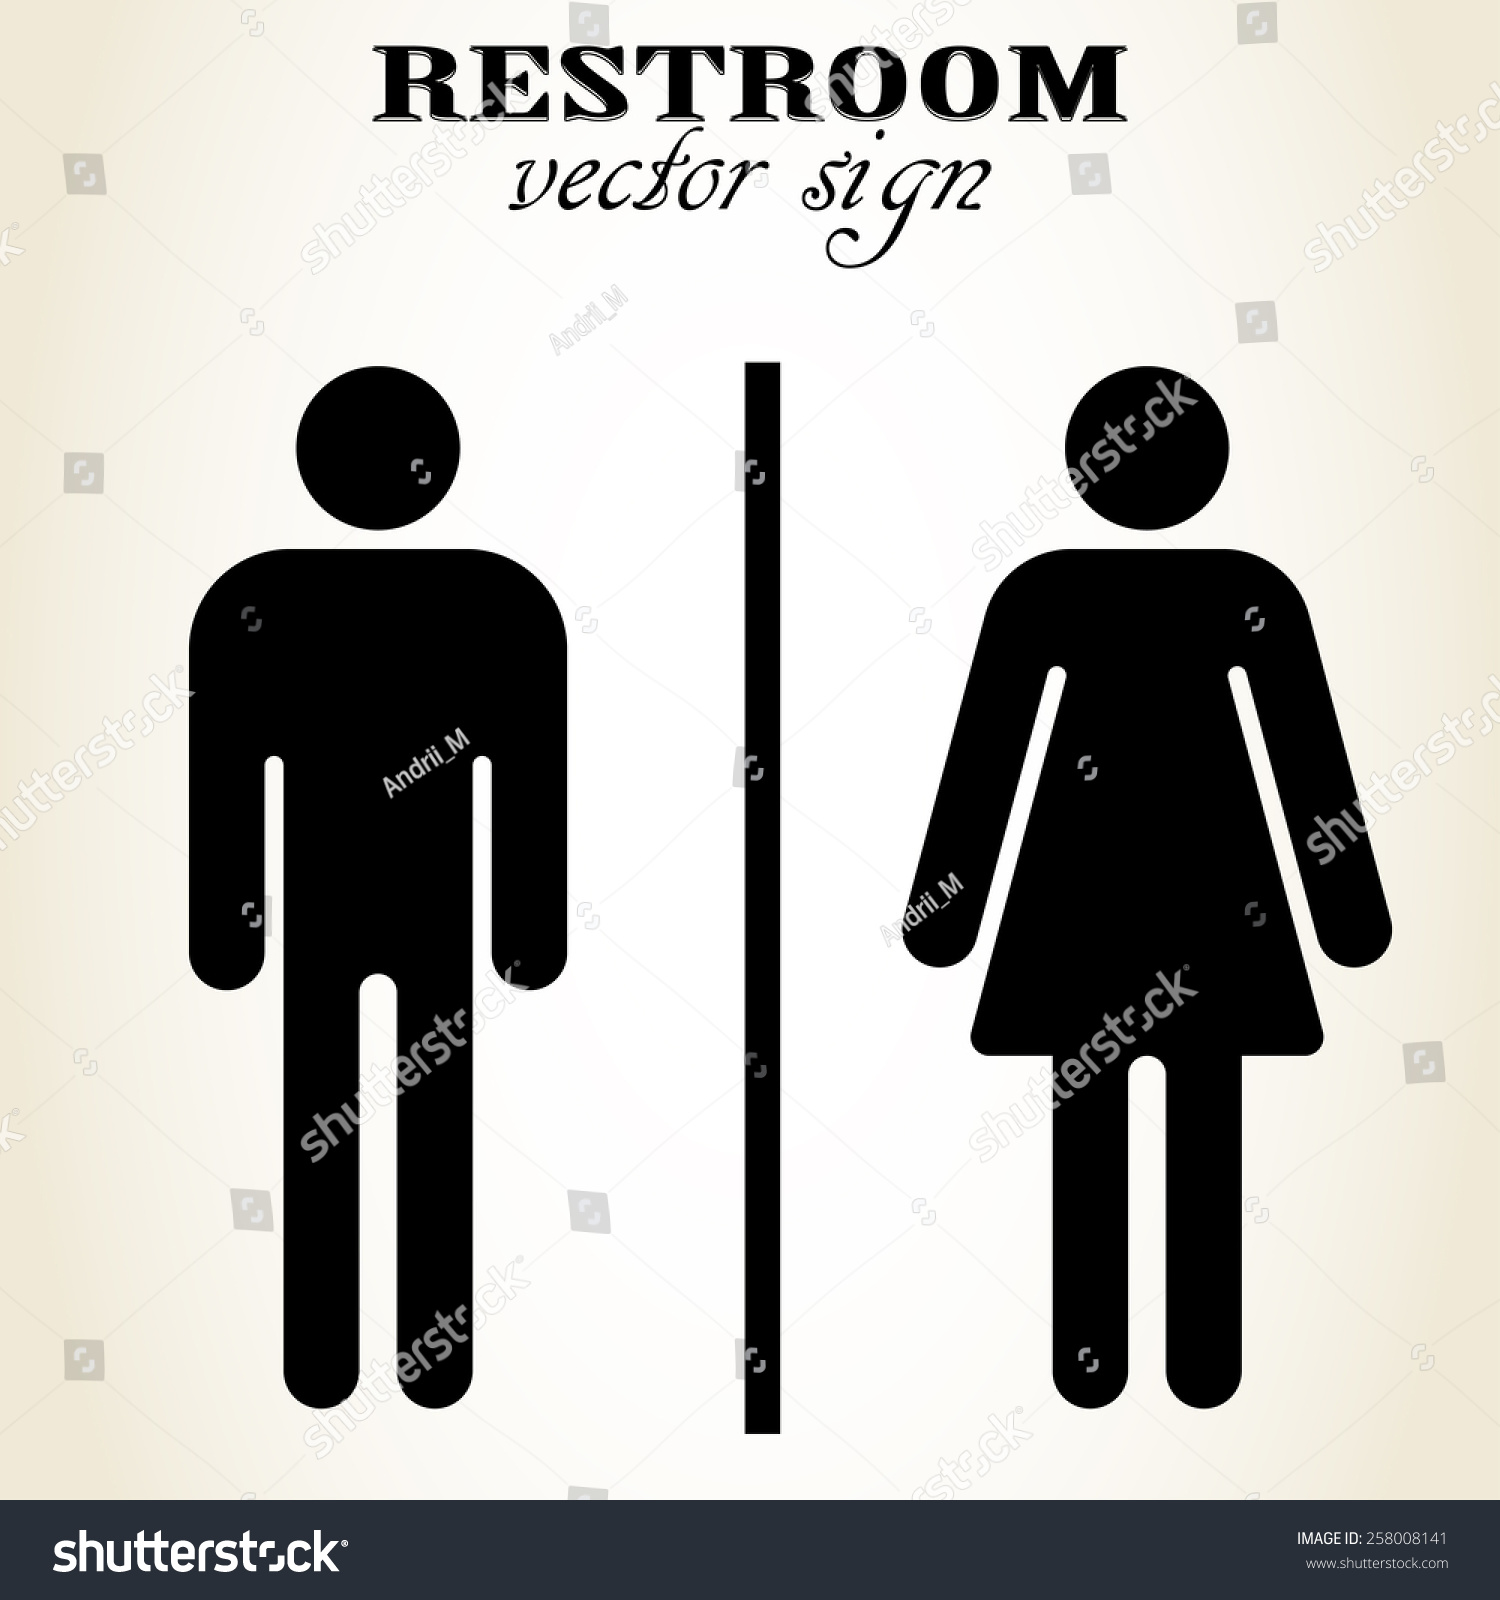 Image result for men and women symbols at public toilets